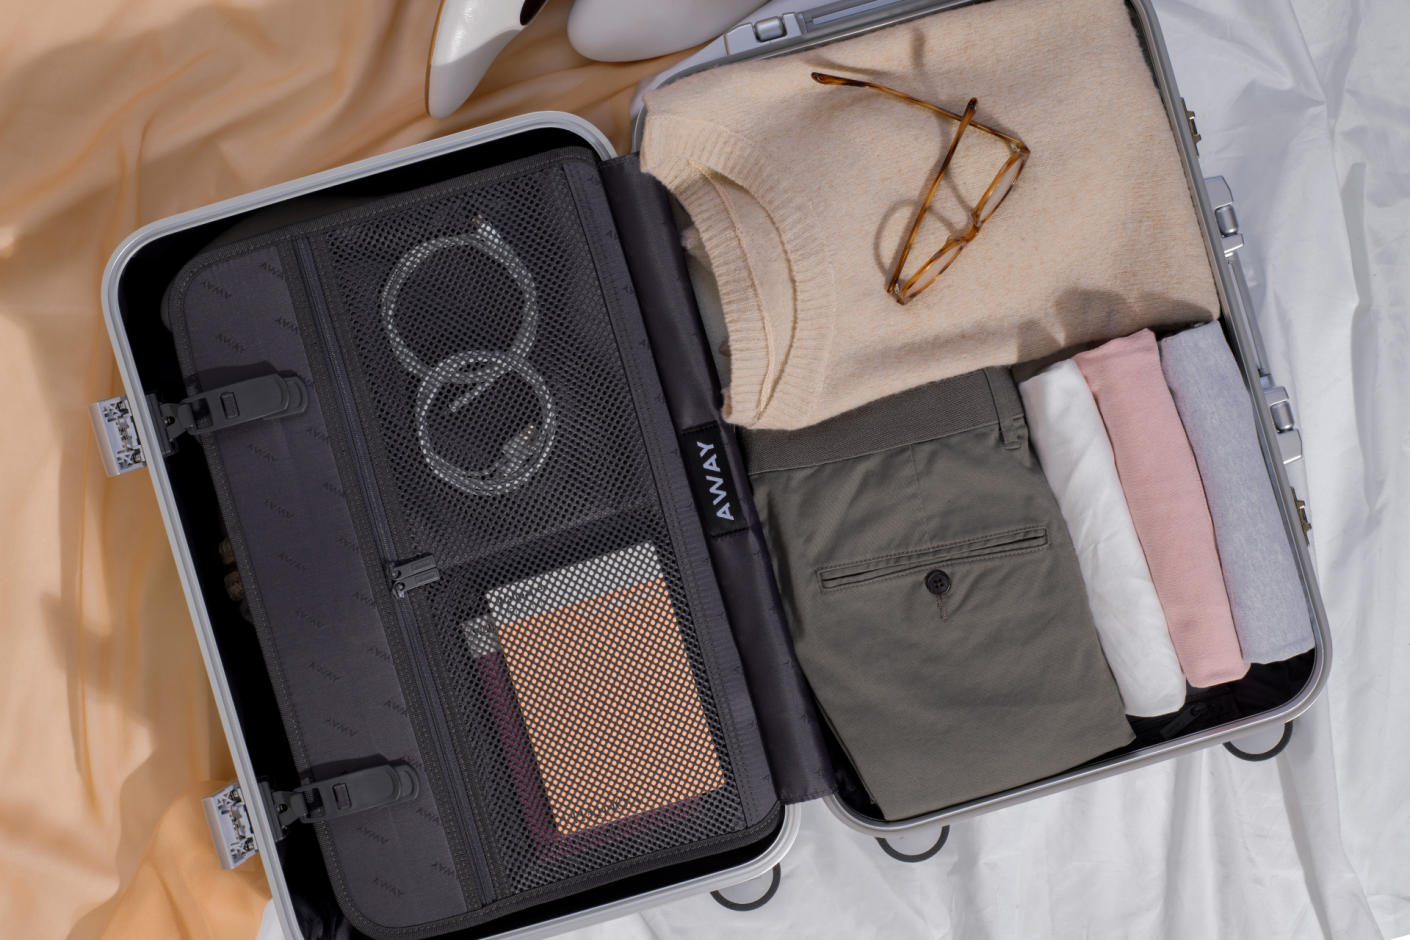 An Aluminum suitcase opened to reveal a clip in mesh pocketed panel folded clothes on the right side.